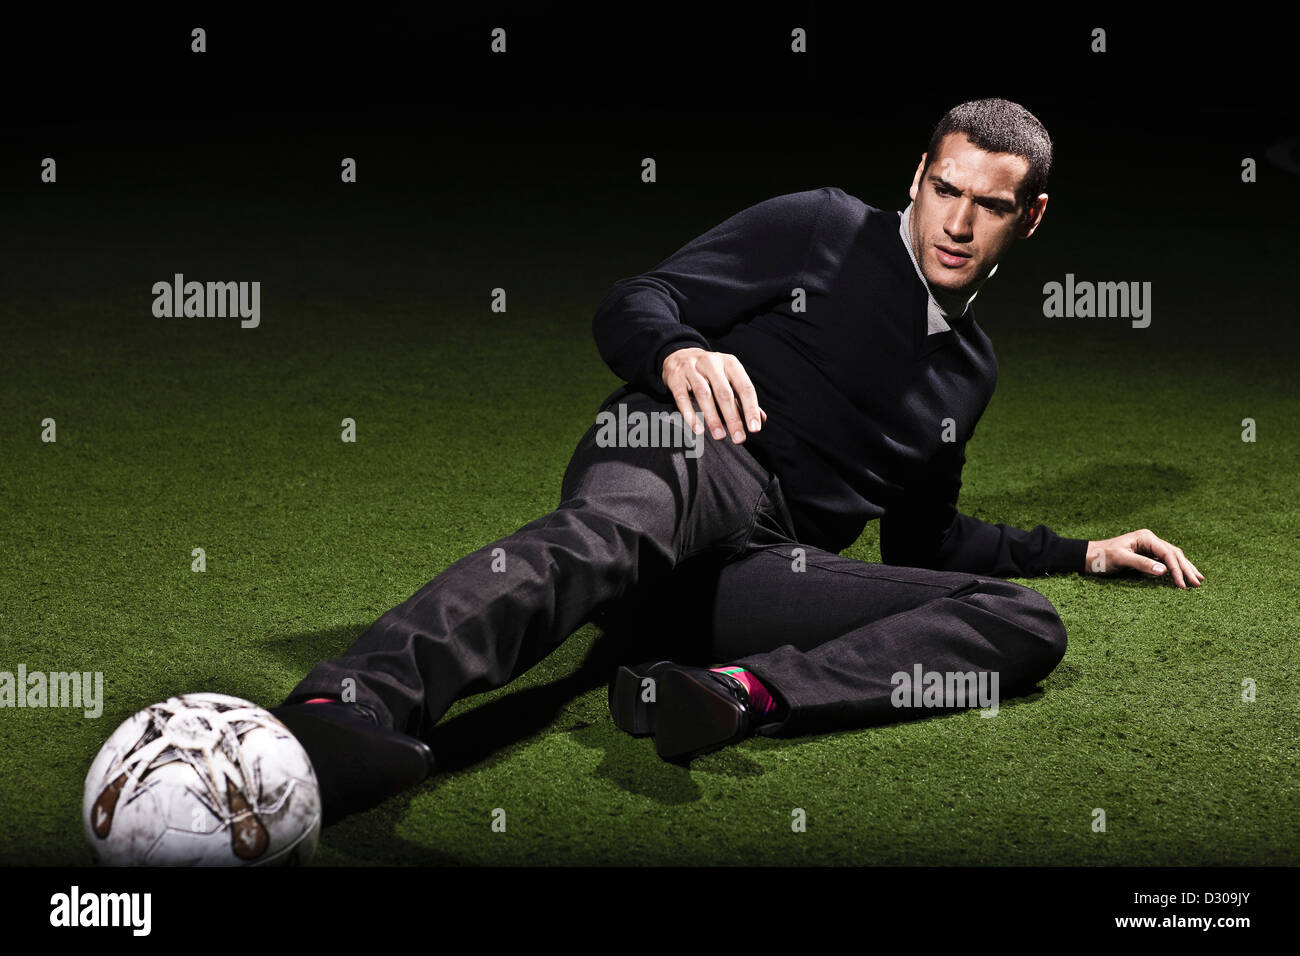 Footballer reaching for ball on astroturf - Stock Image